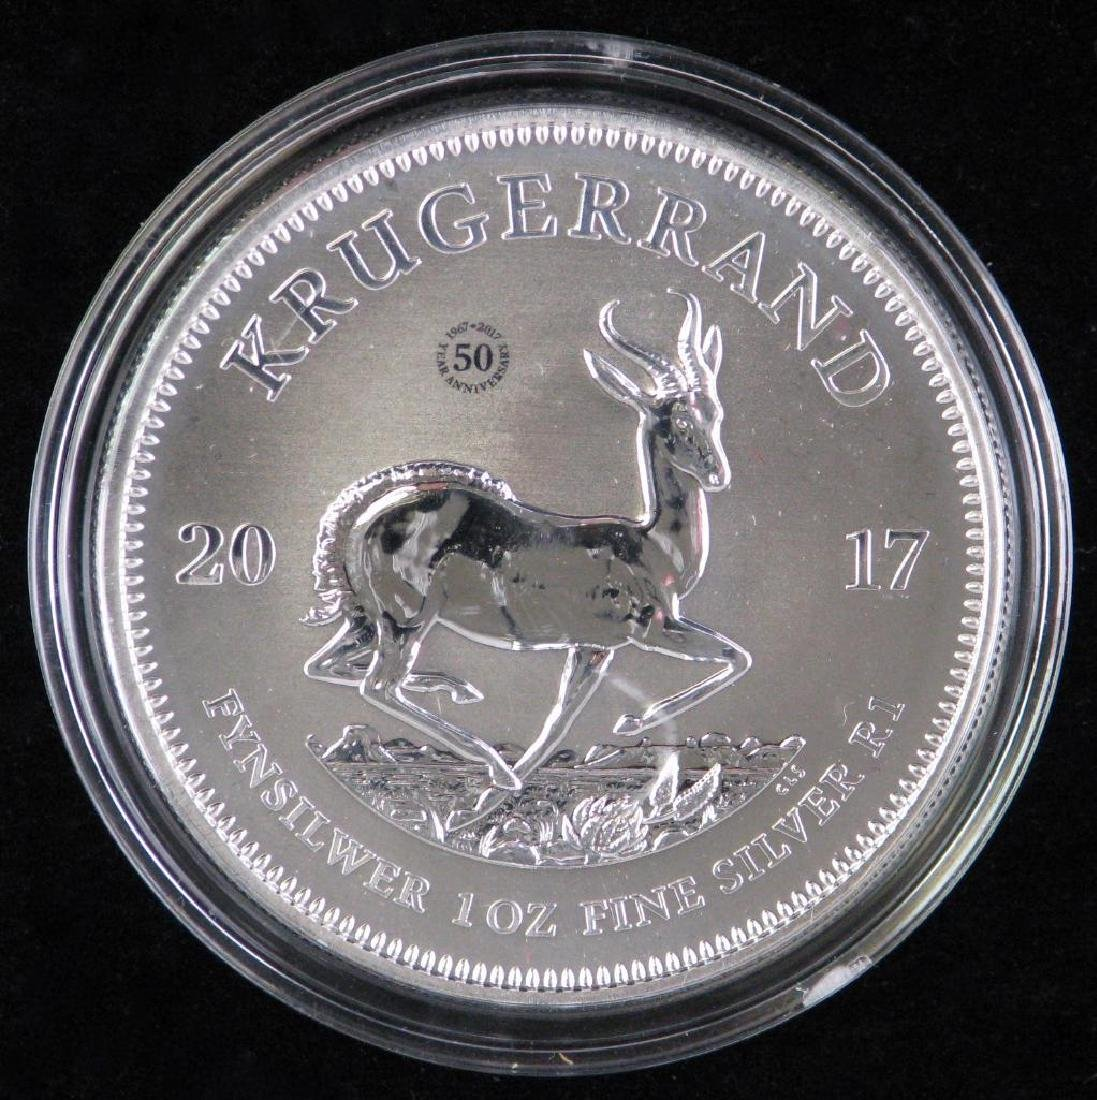 2017 Silver Krugerrand - Premium Uncirculated - 2